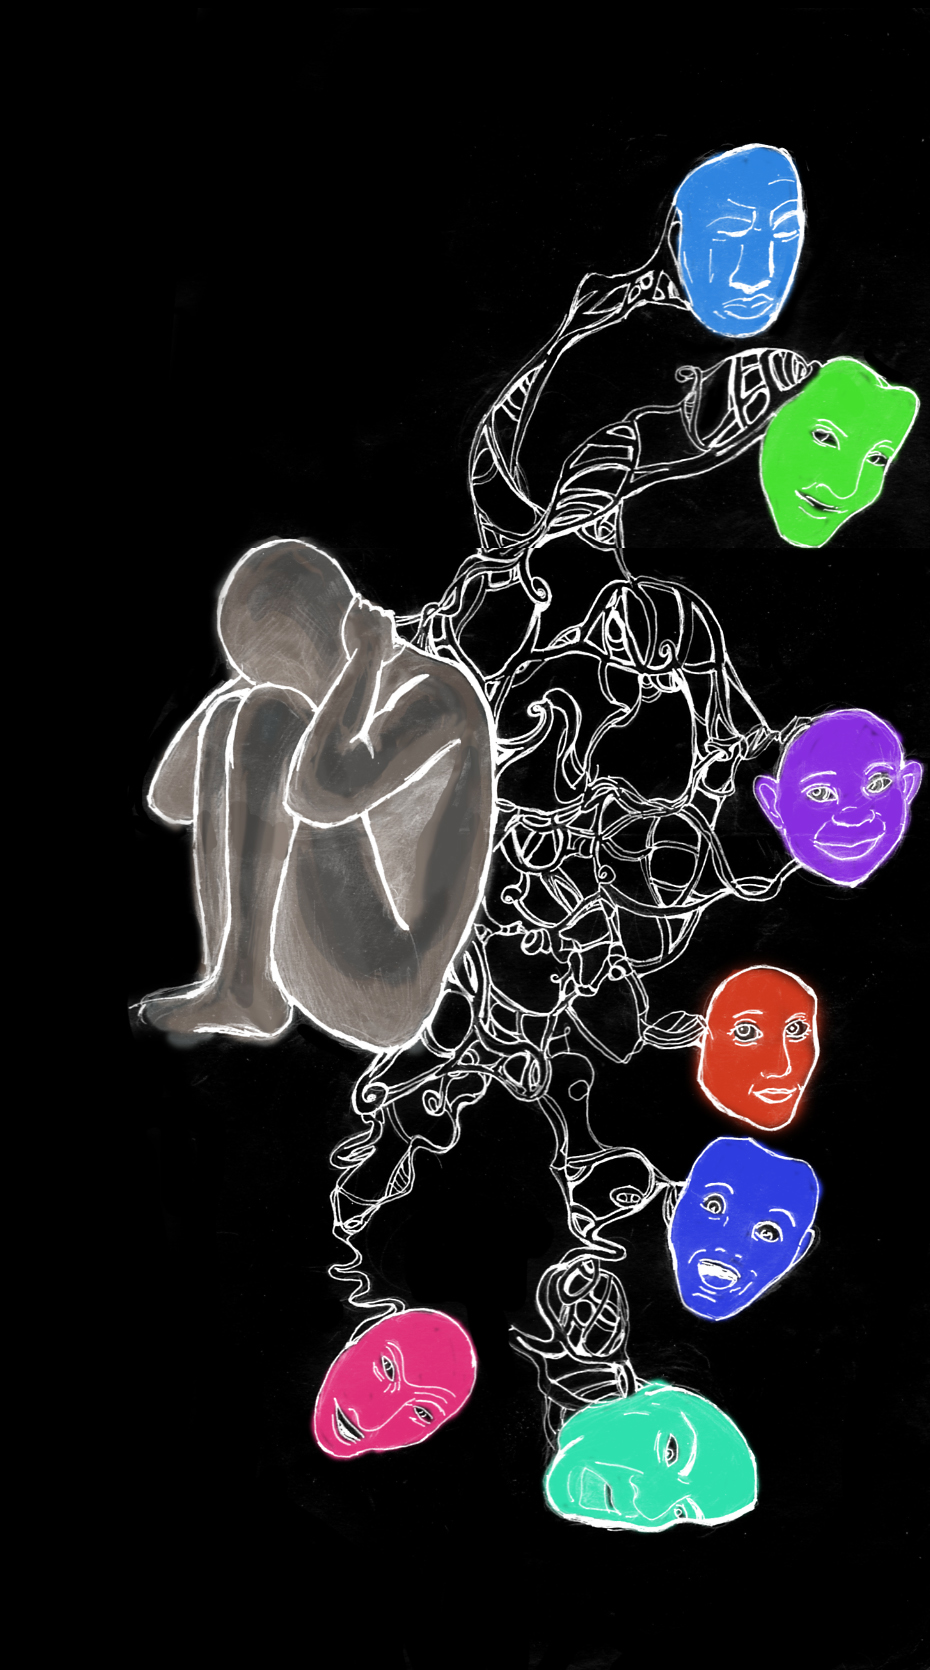 article about dissociative identity disorder